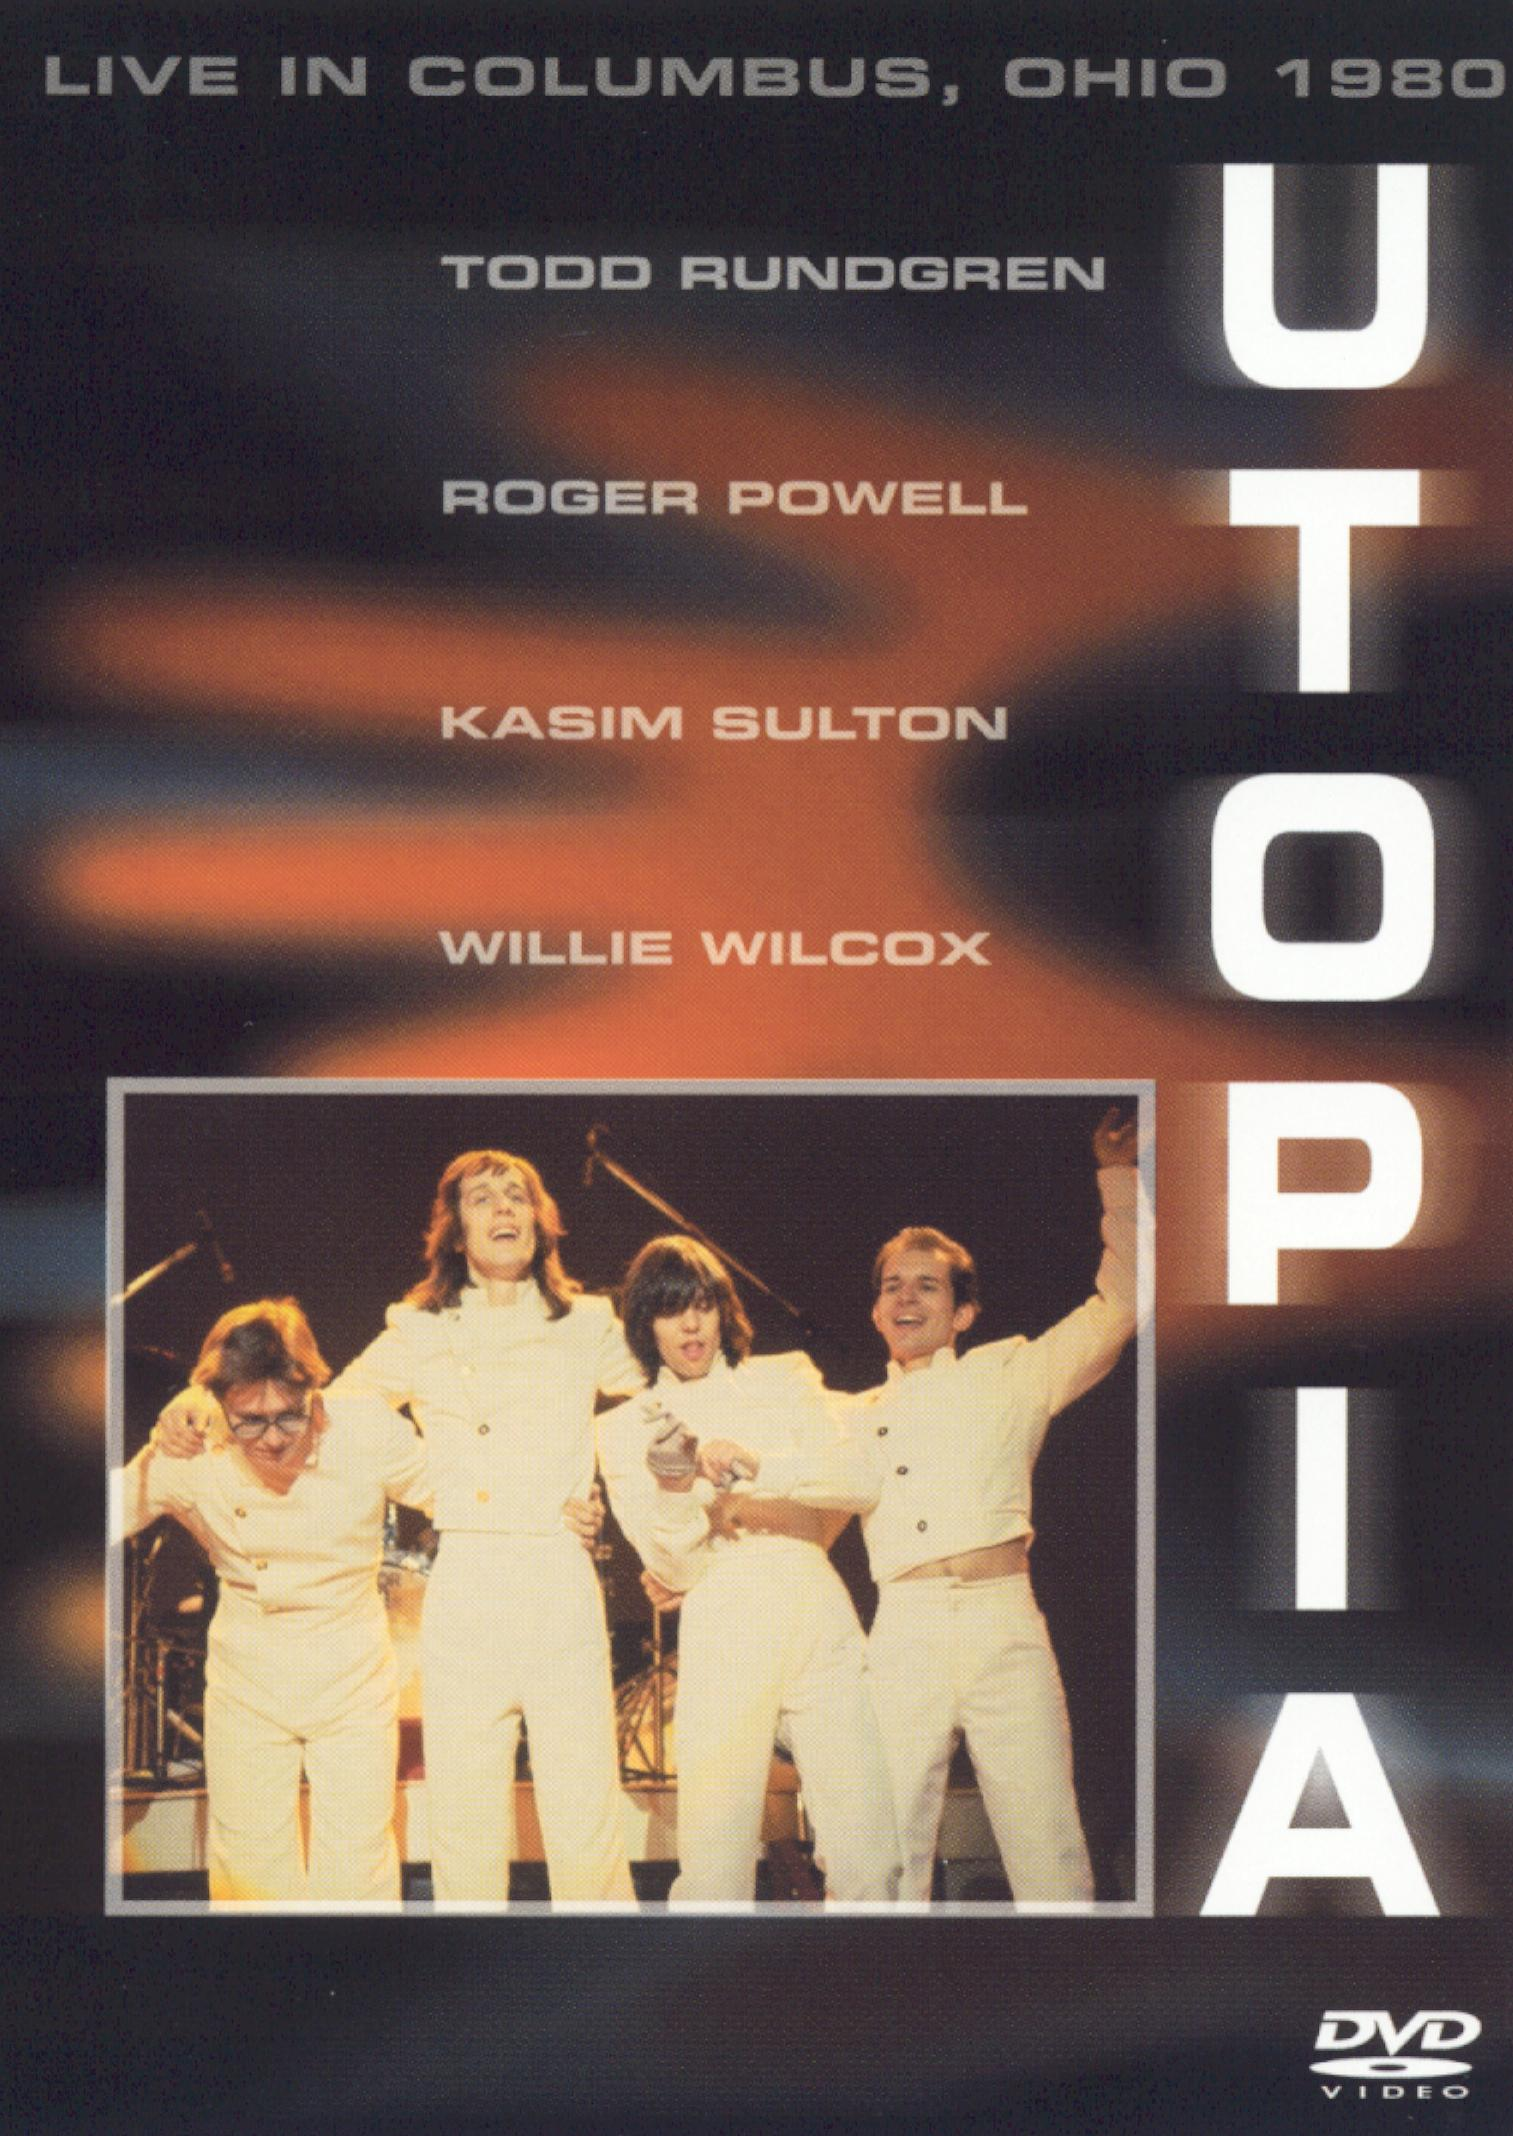 Utopia: Live In Columbus, Ohio 1980